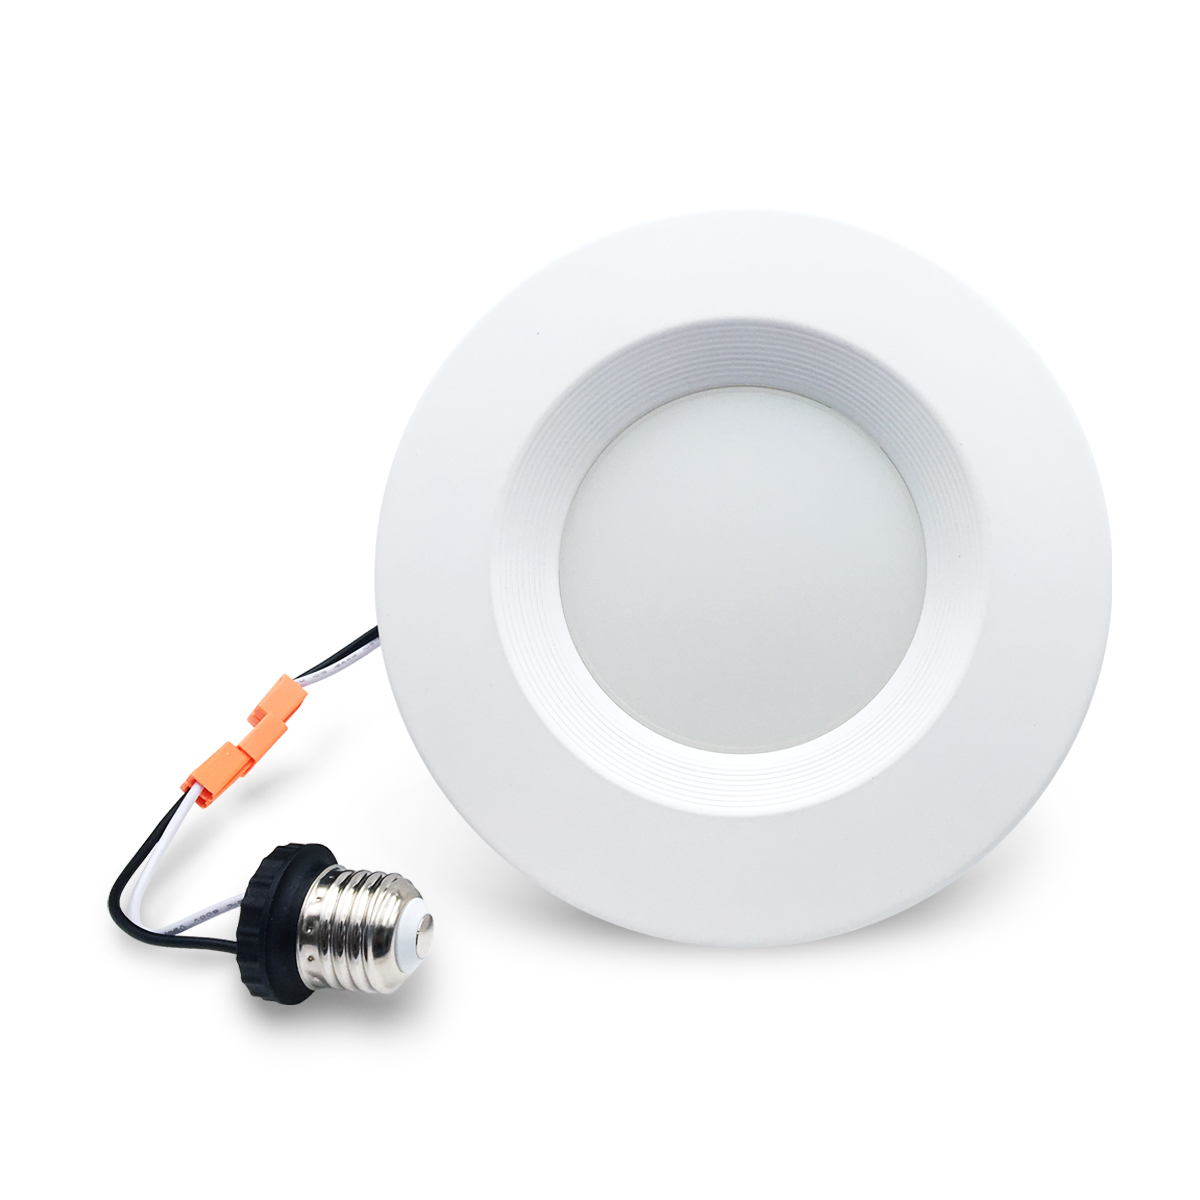 ETL 5 CCT Tunable 6 inch 15w  1350 lm LED retrofit downlight pot light with dimmable feature